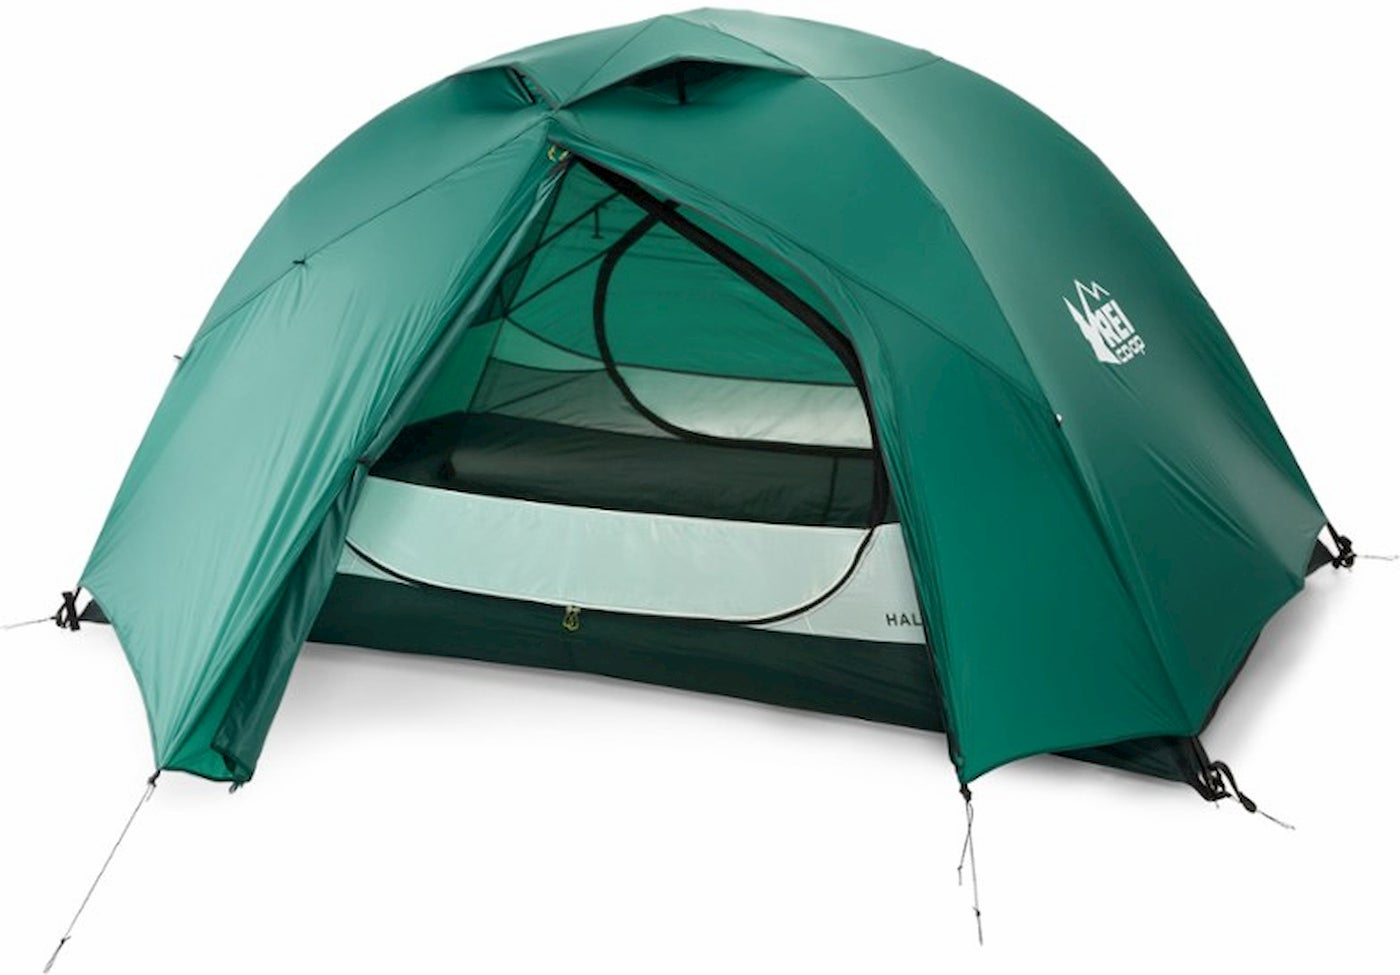 REI Half Dome 2 Tent in Green